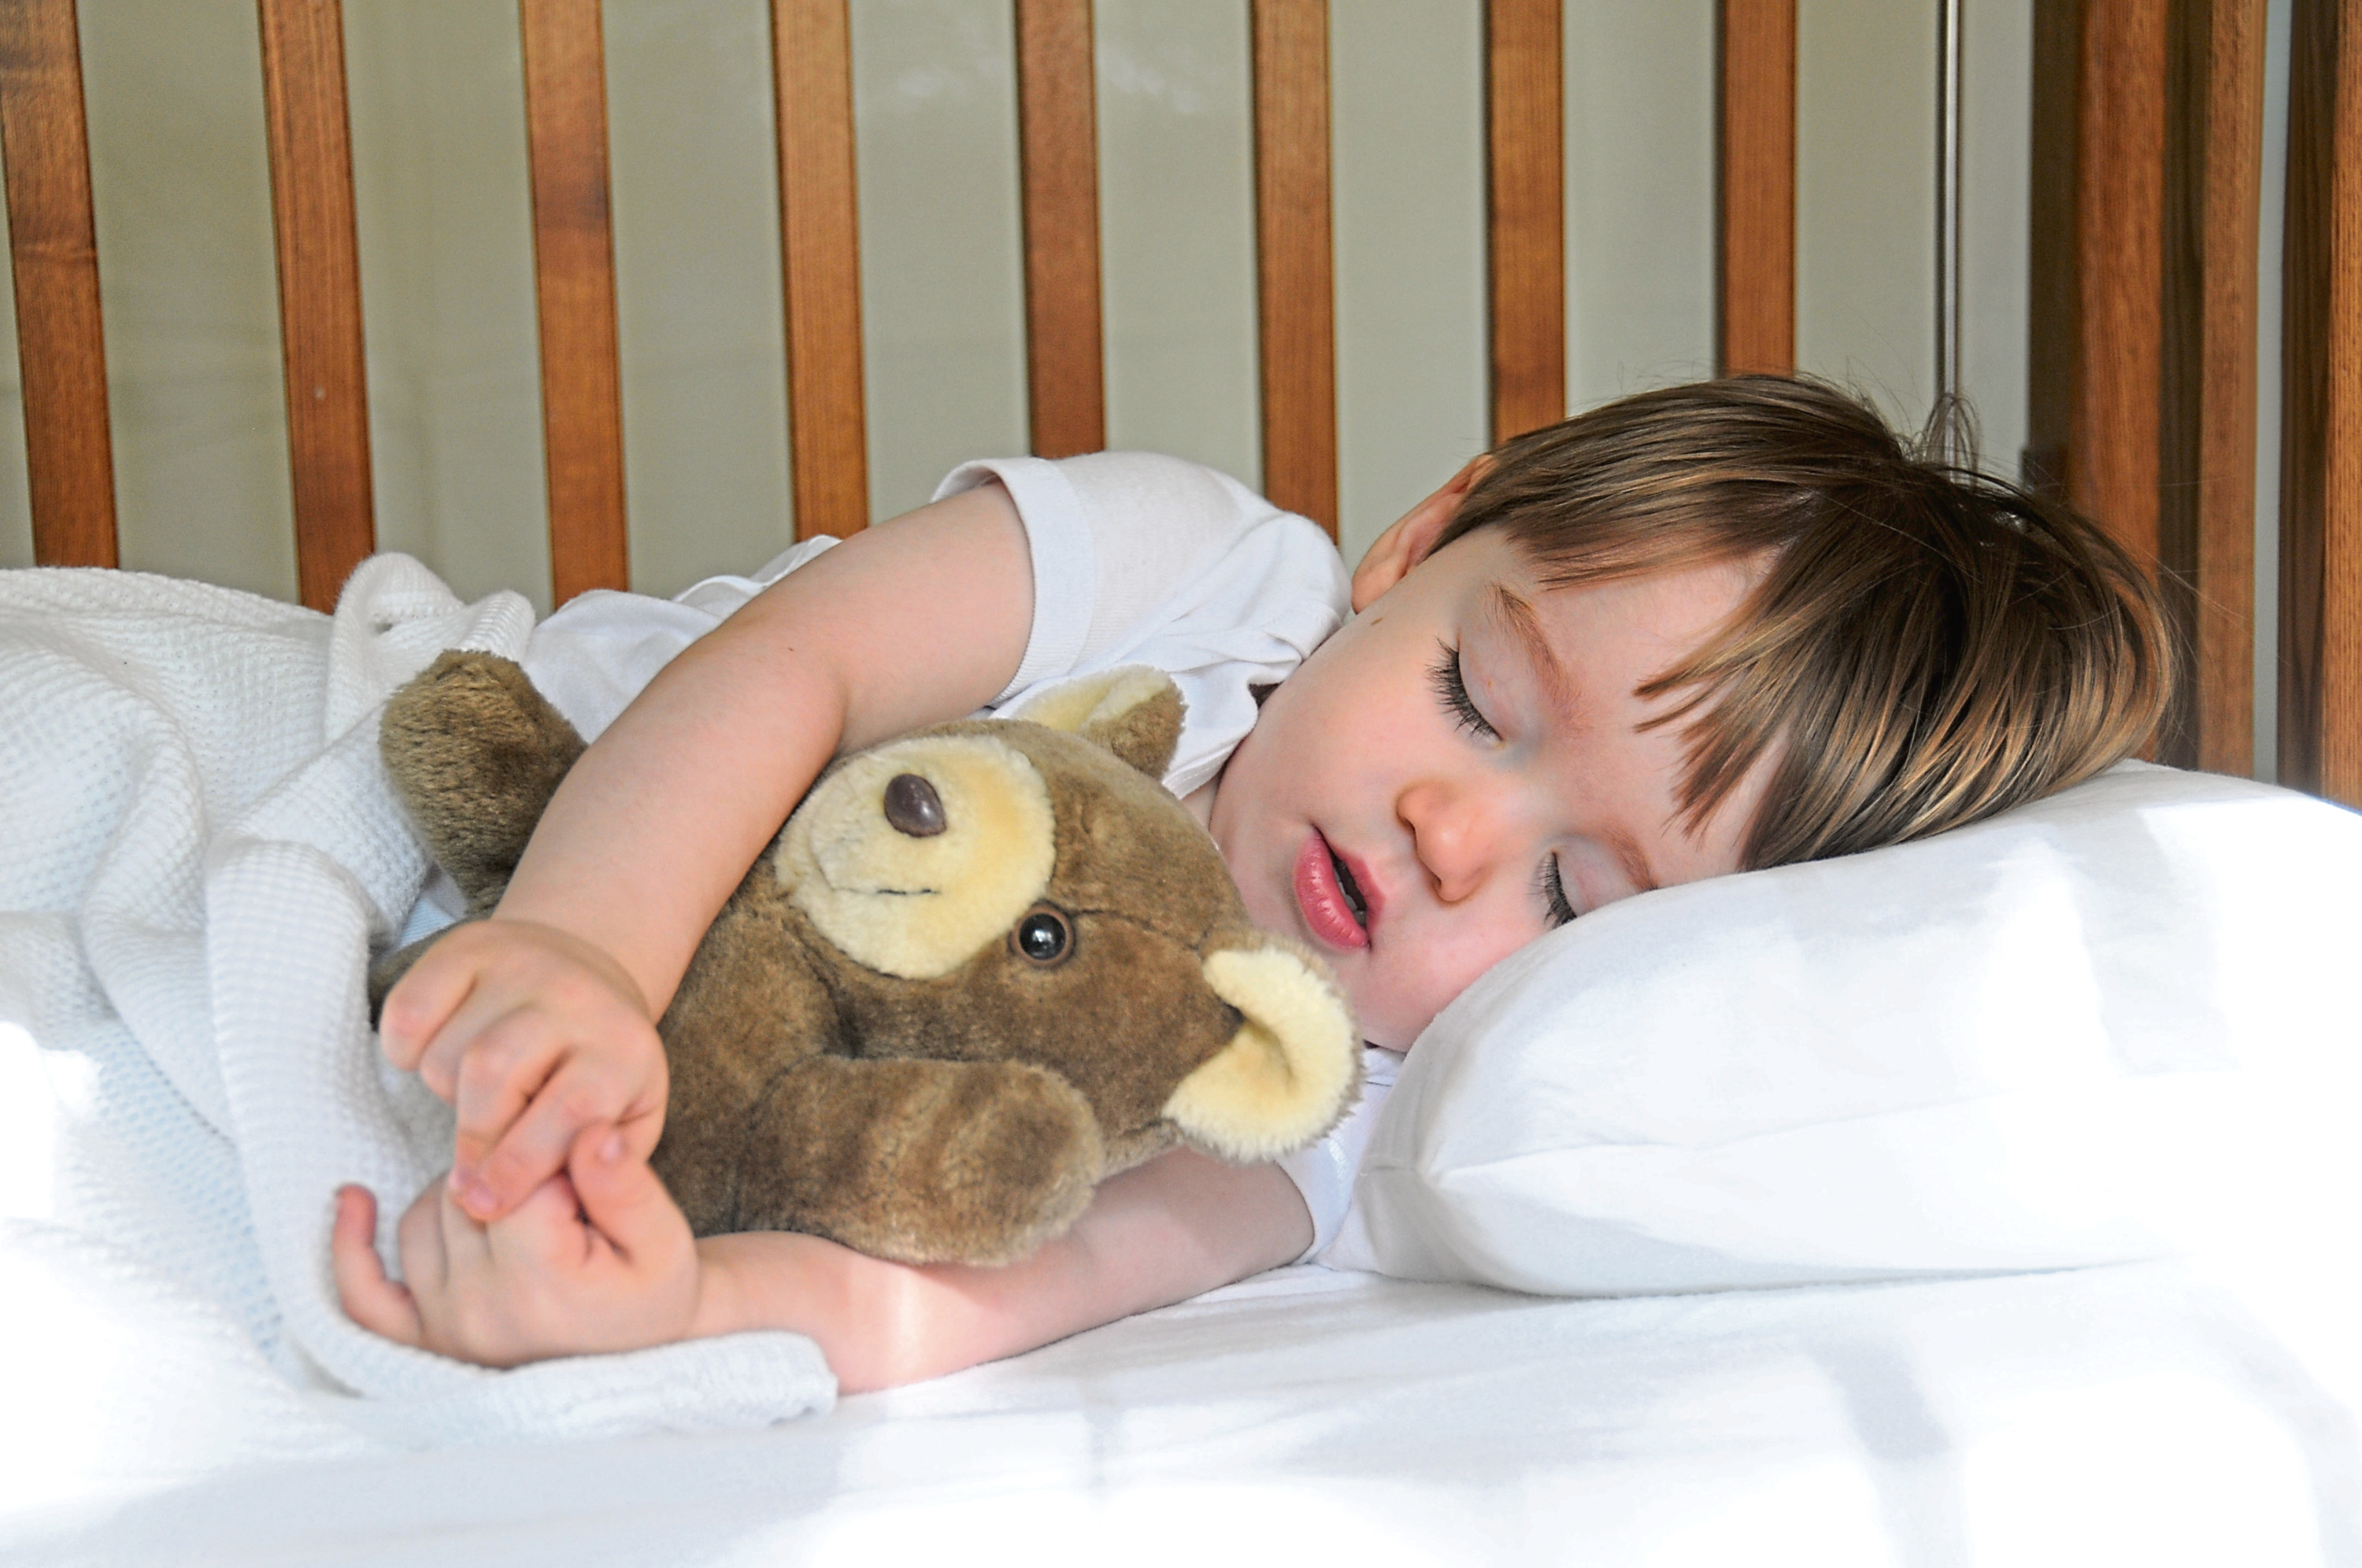 A good night's sleep has many health benefits for young and old 